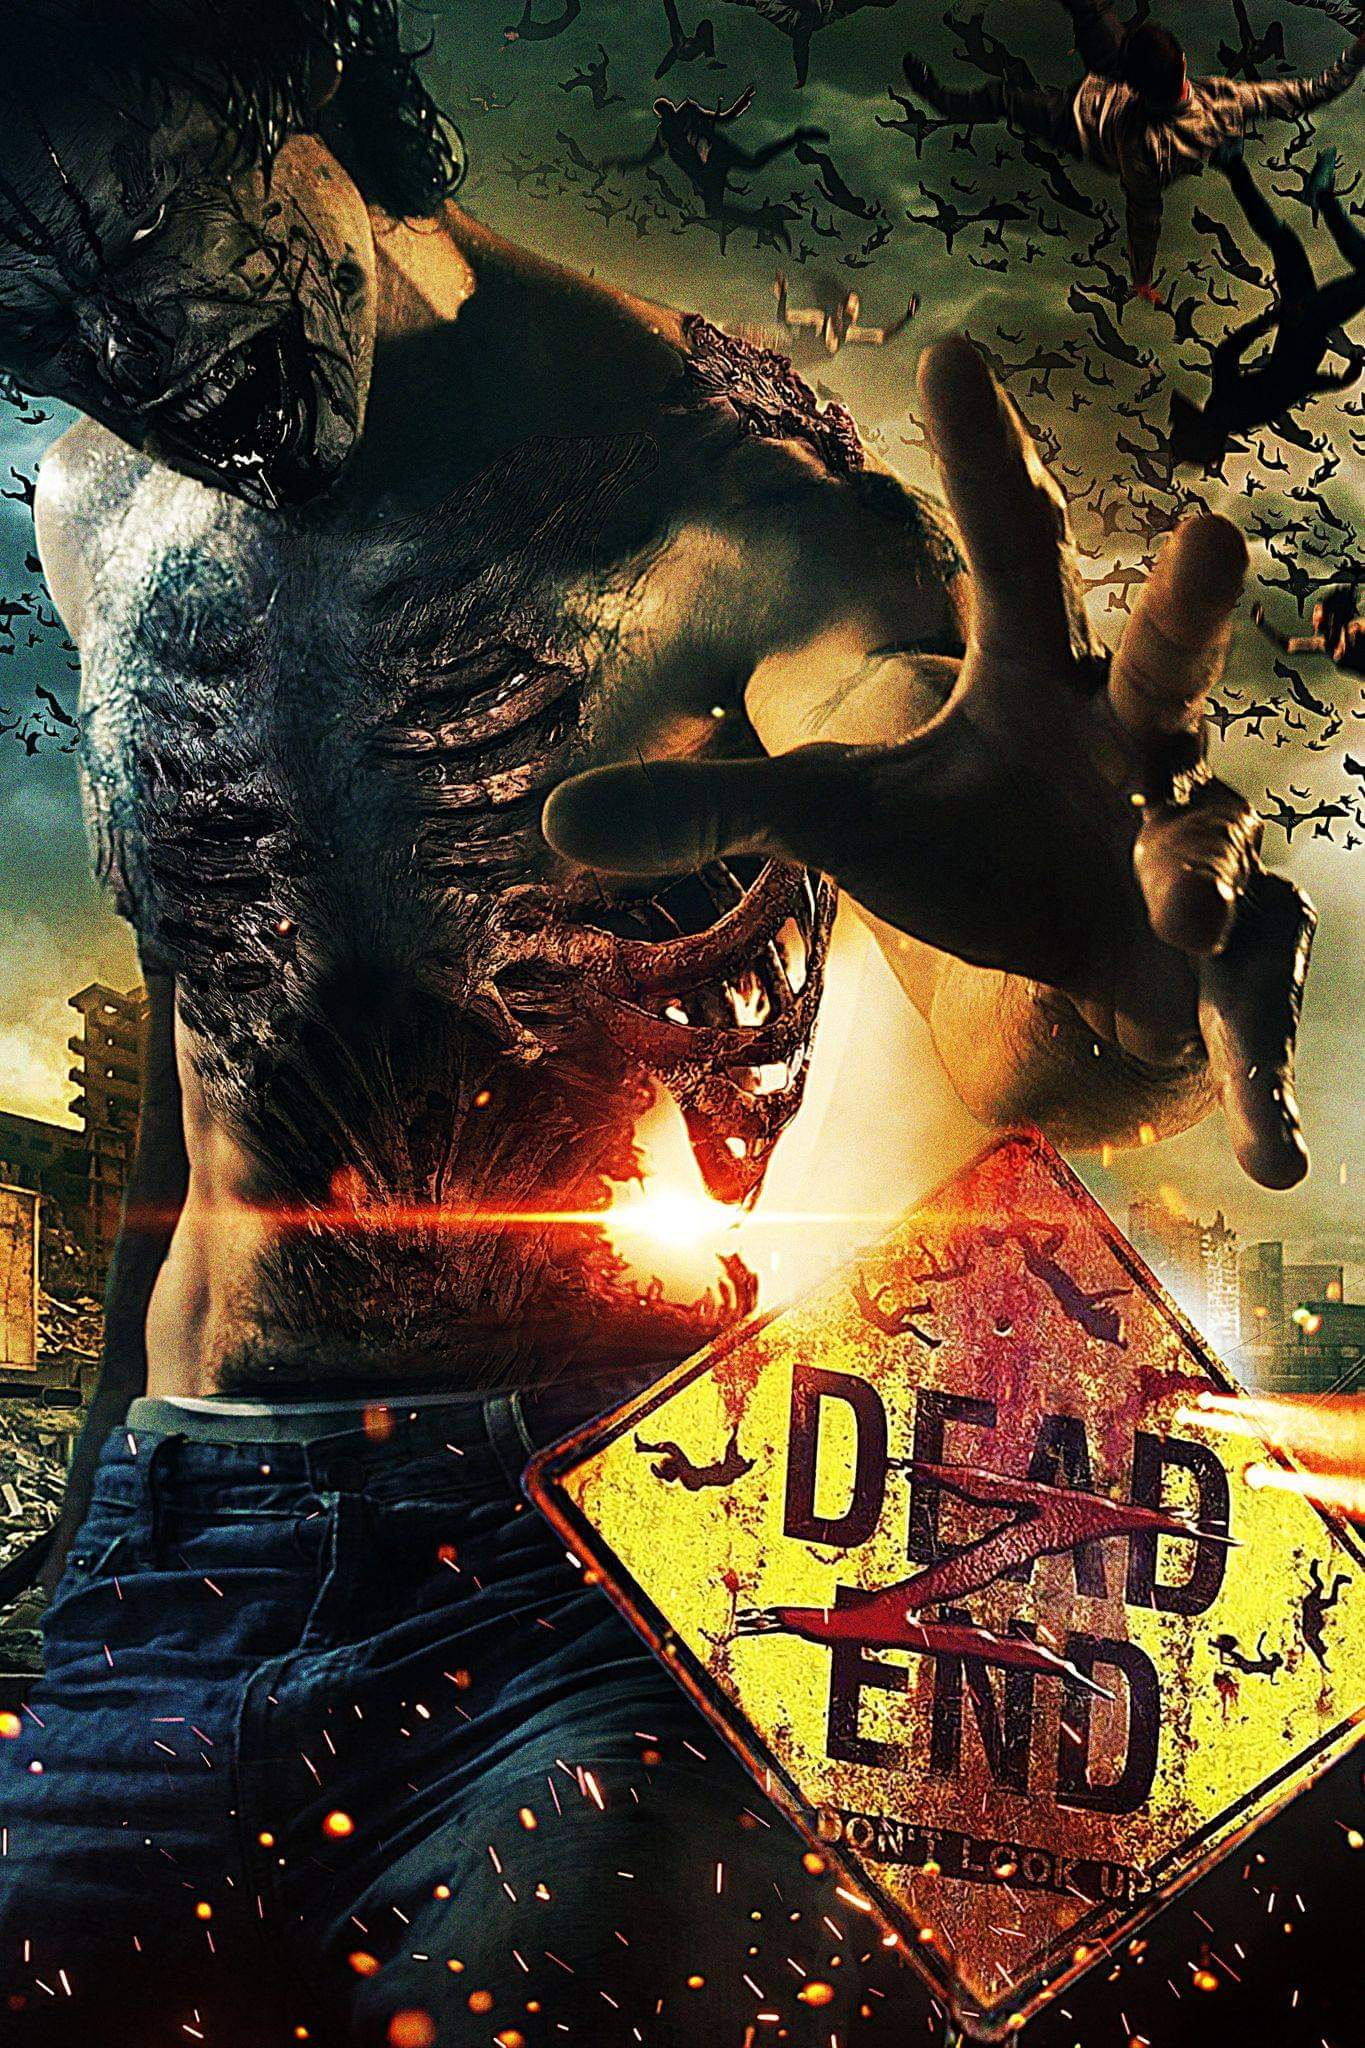 Zombies Rain From Above In Insane Z DEAD END Teaser!